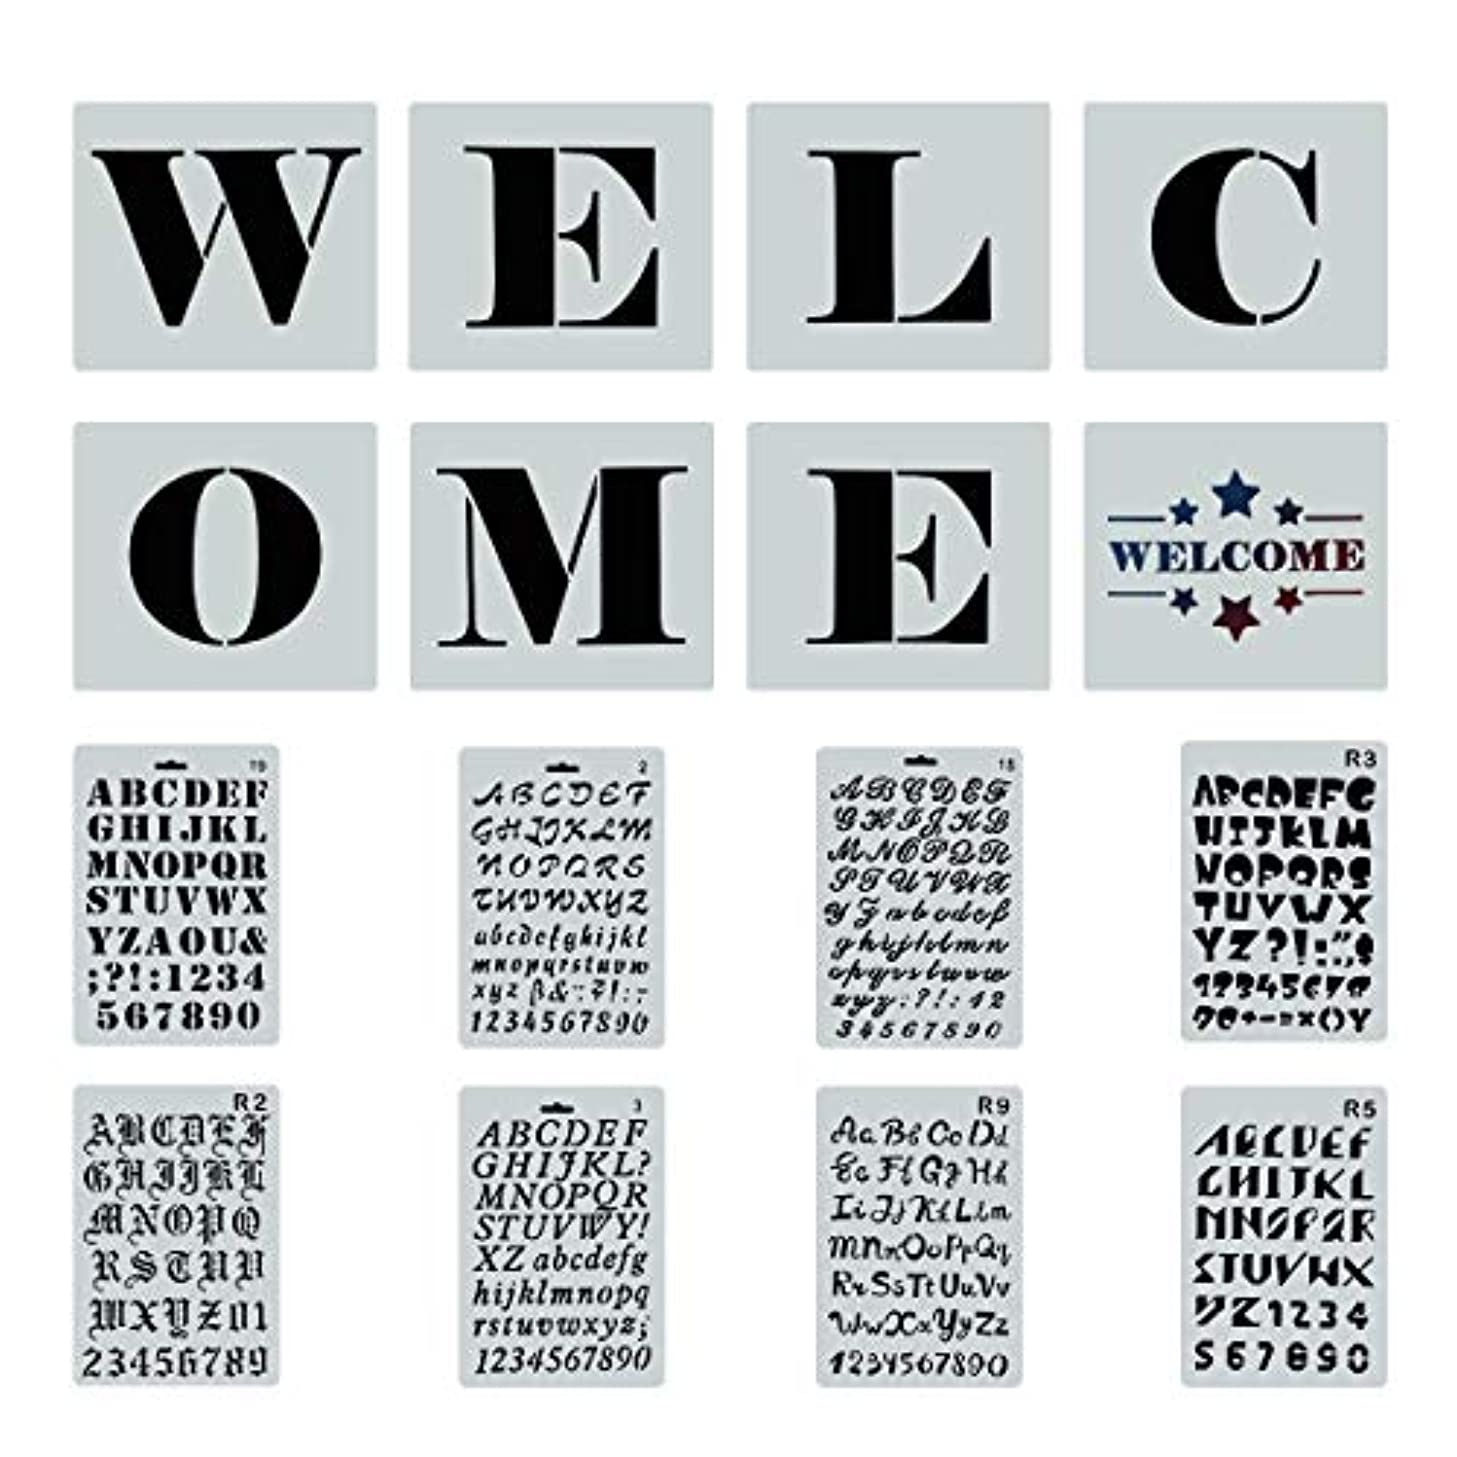 Reusable Welcome Sign Stencils for Painting on Wood, 8 PCS Large Individual Templates + 8 PCs Letters Stencils with Numbers and Signs for Hotel Home Porch Sign Decorations